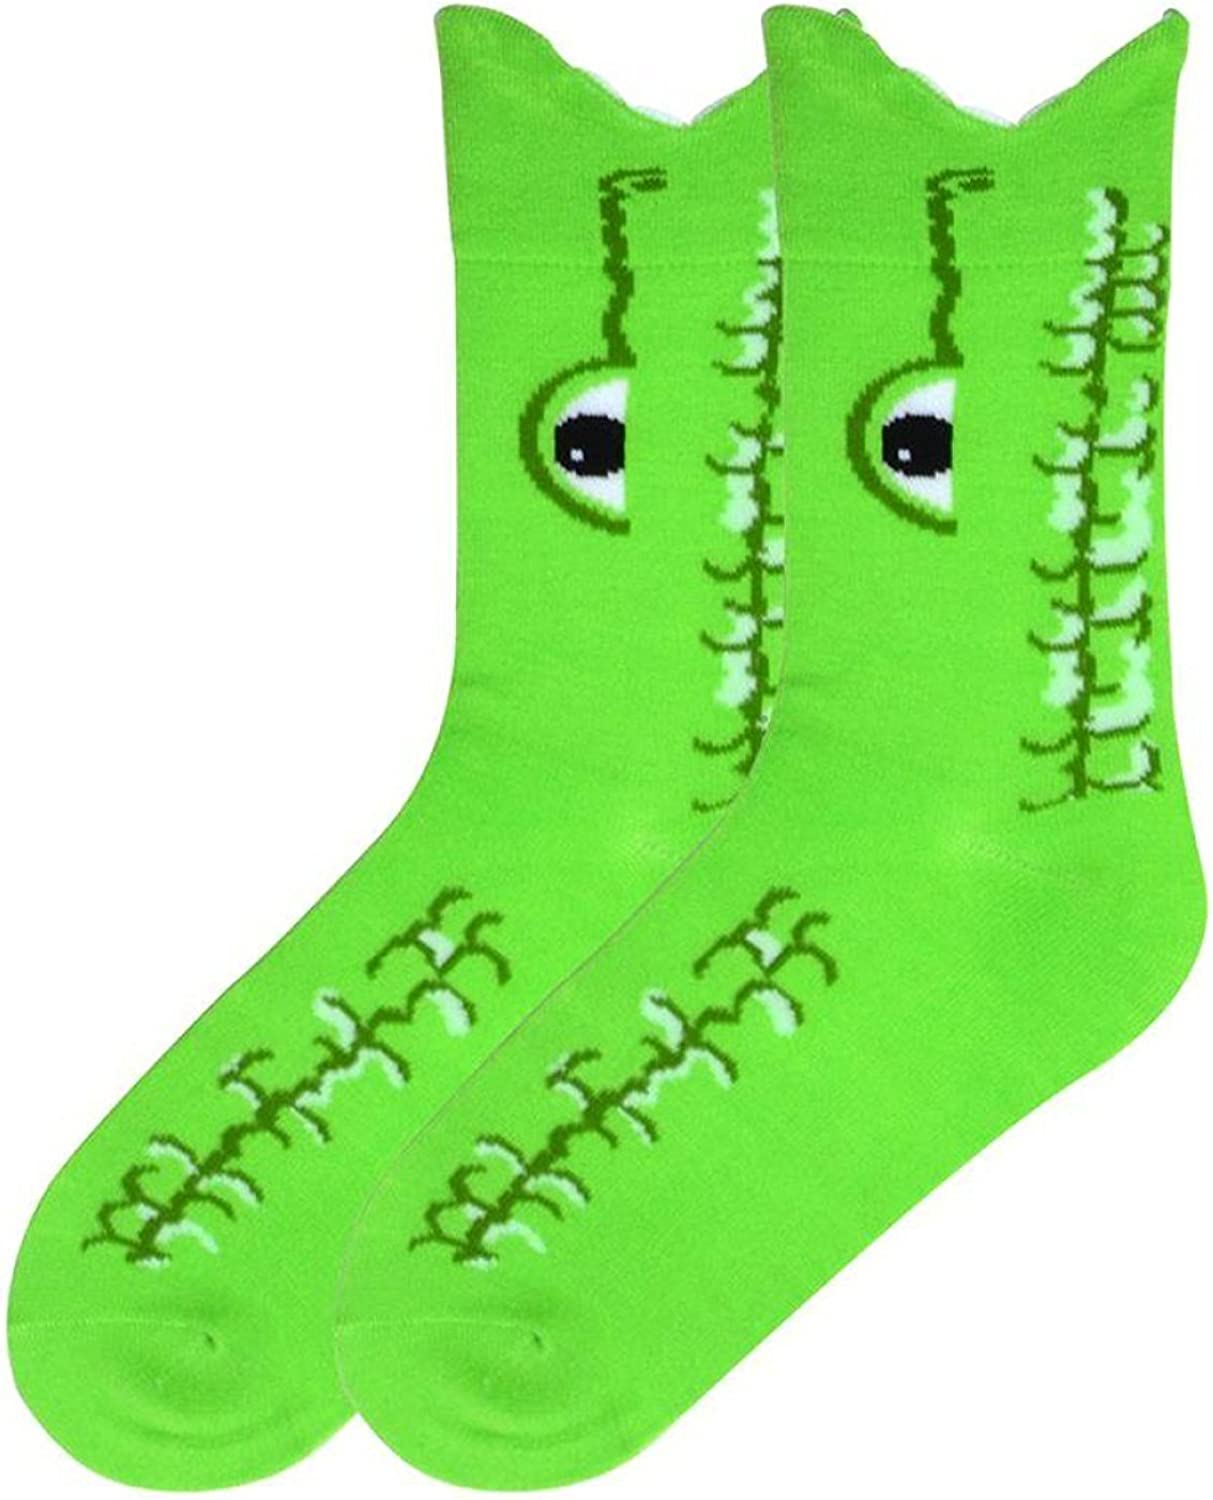 K Bell Brand Wide Mouth Fish comes with a Helicase Brand Sock Ring